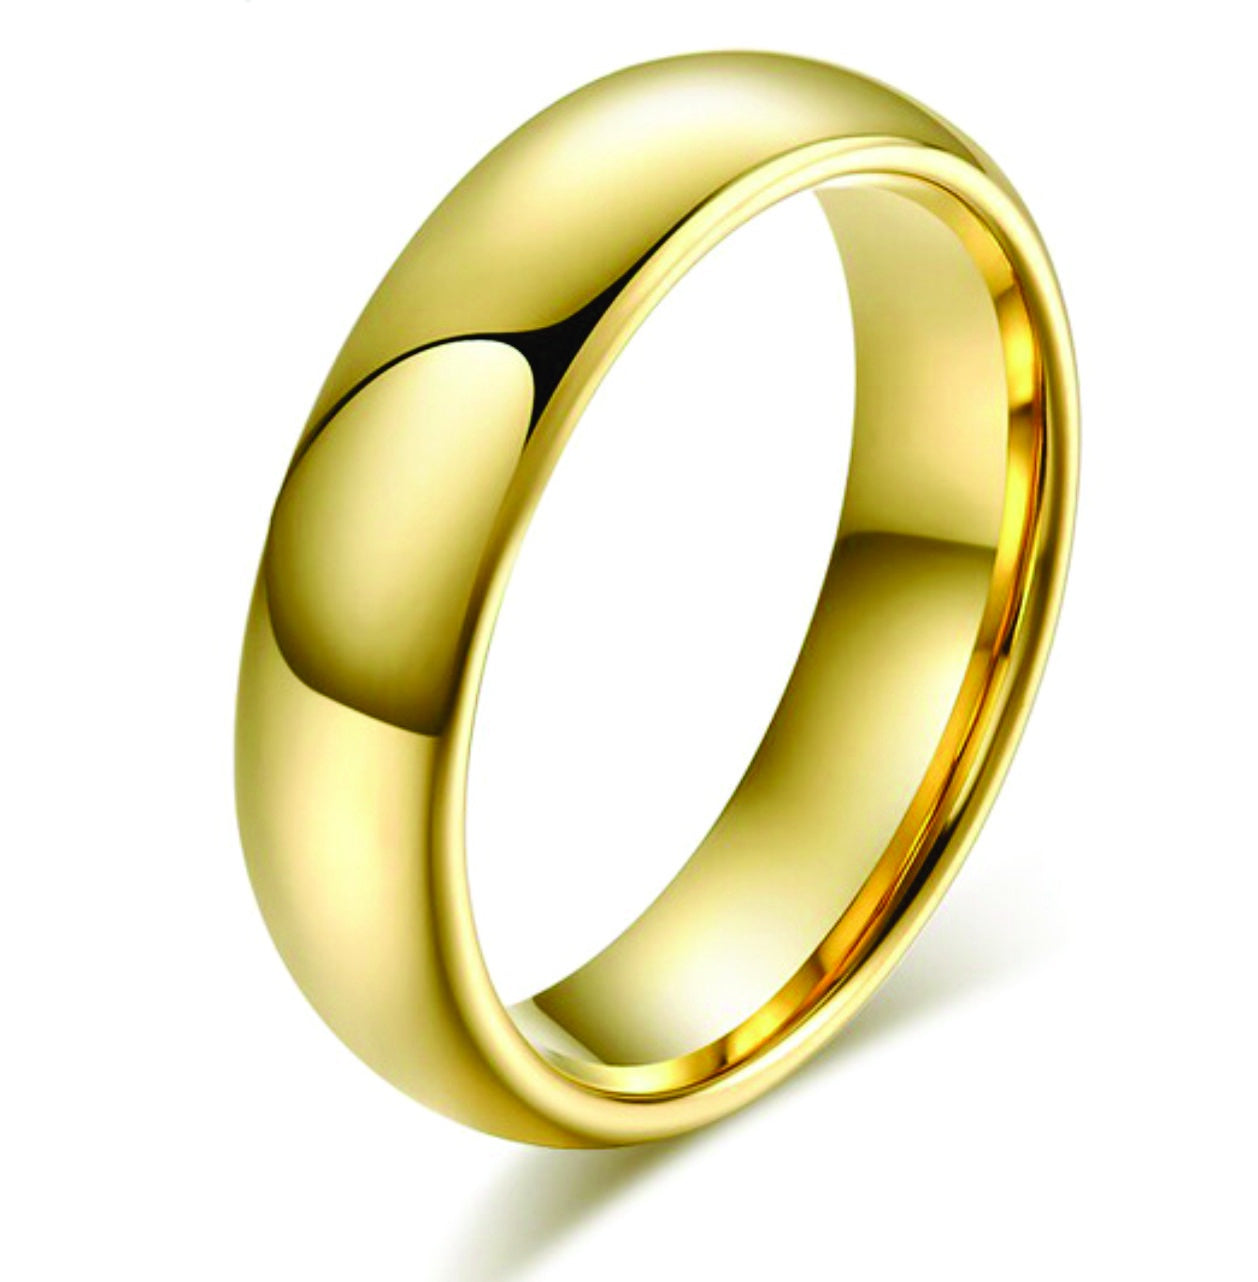 6mm Gold Tungsten Ring